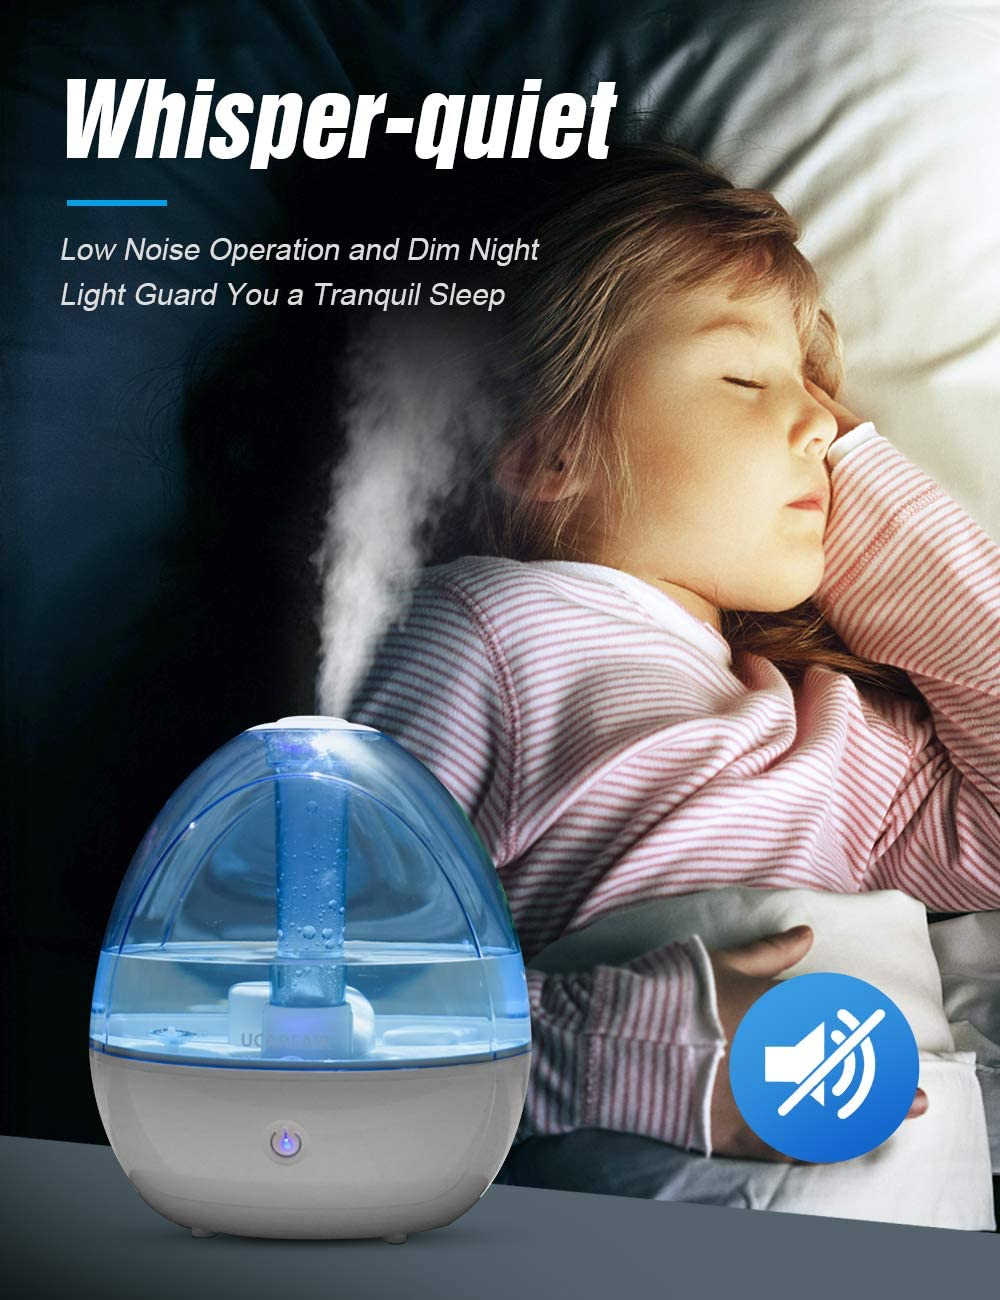 Cool Mist Humidifier Room Humidifier for Bedroom Baby, Super Quiet Mist Humidifier with High Low Mist Output, Waterless Auto off, Night Light,